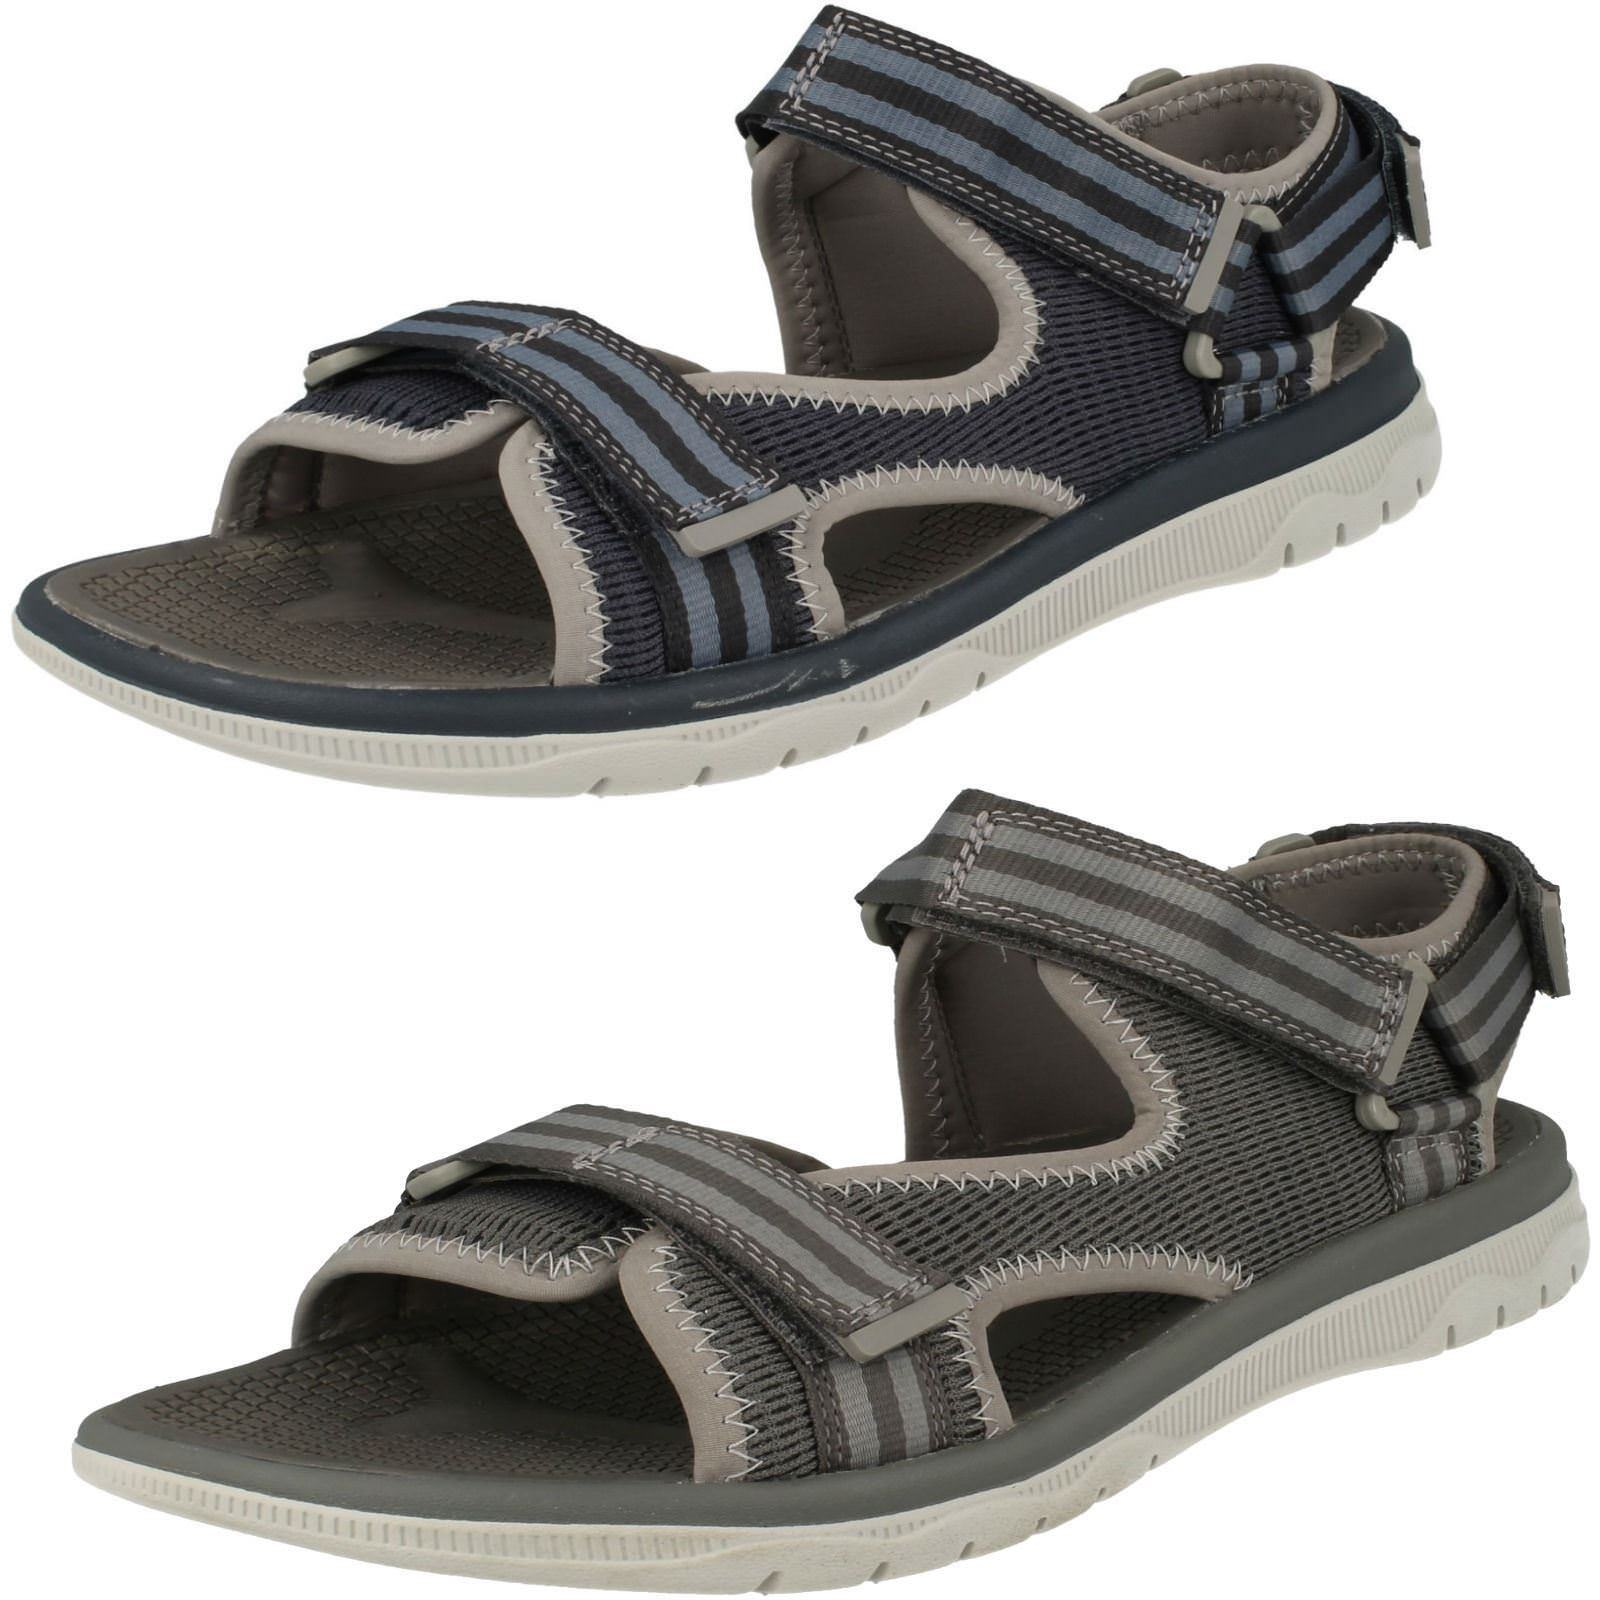 Mens Cloudsteppers by Clarks Sandals